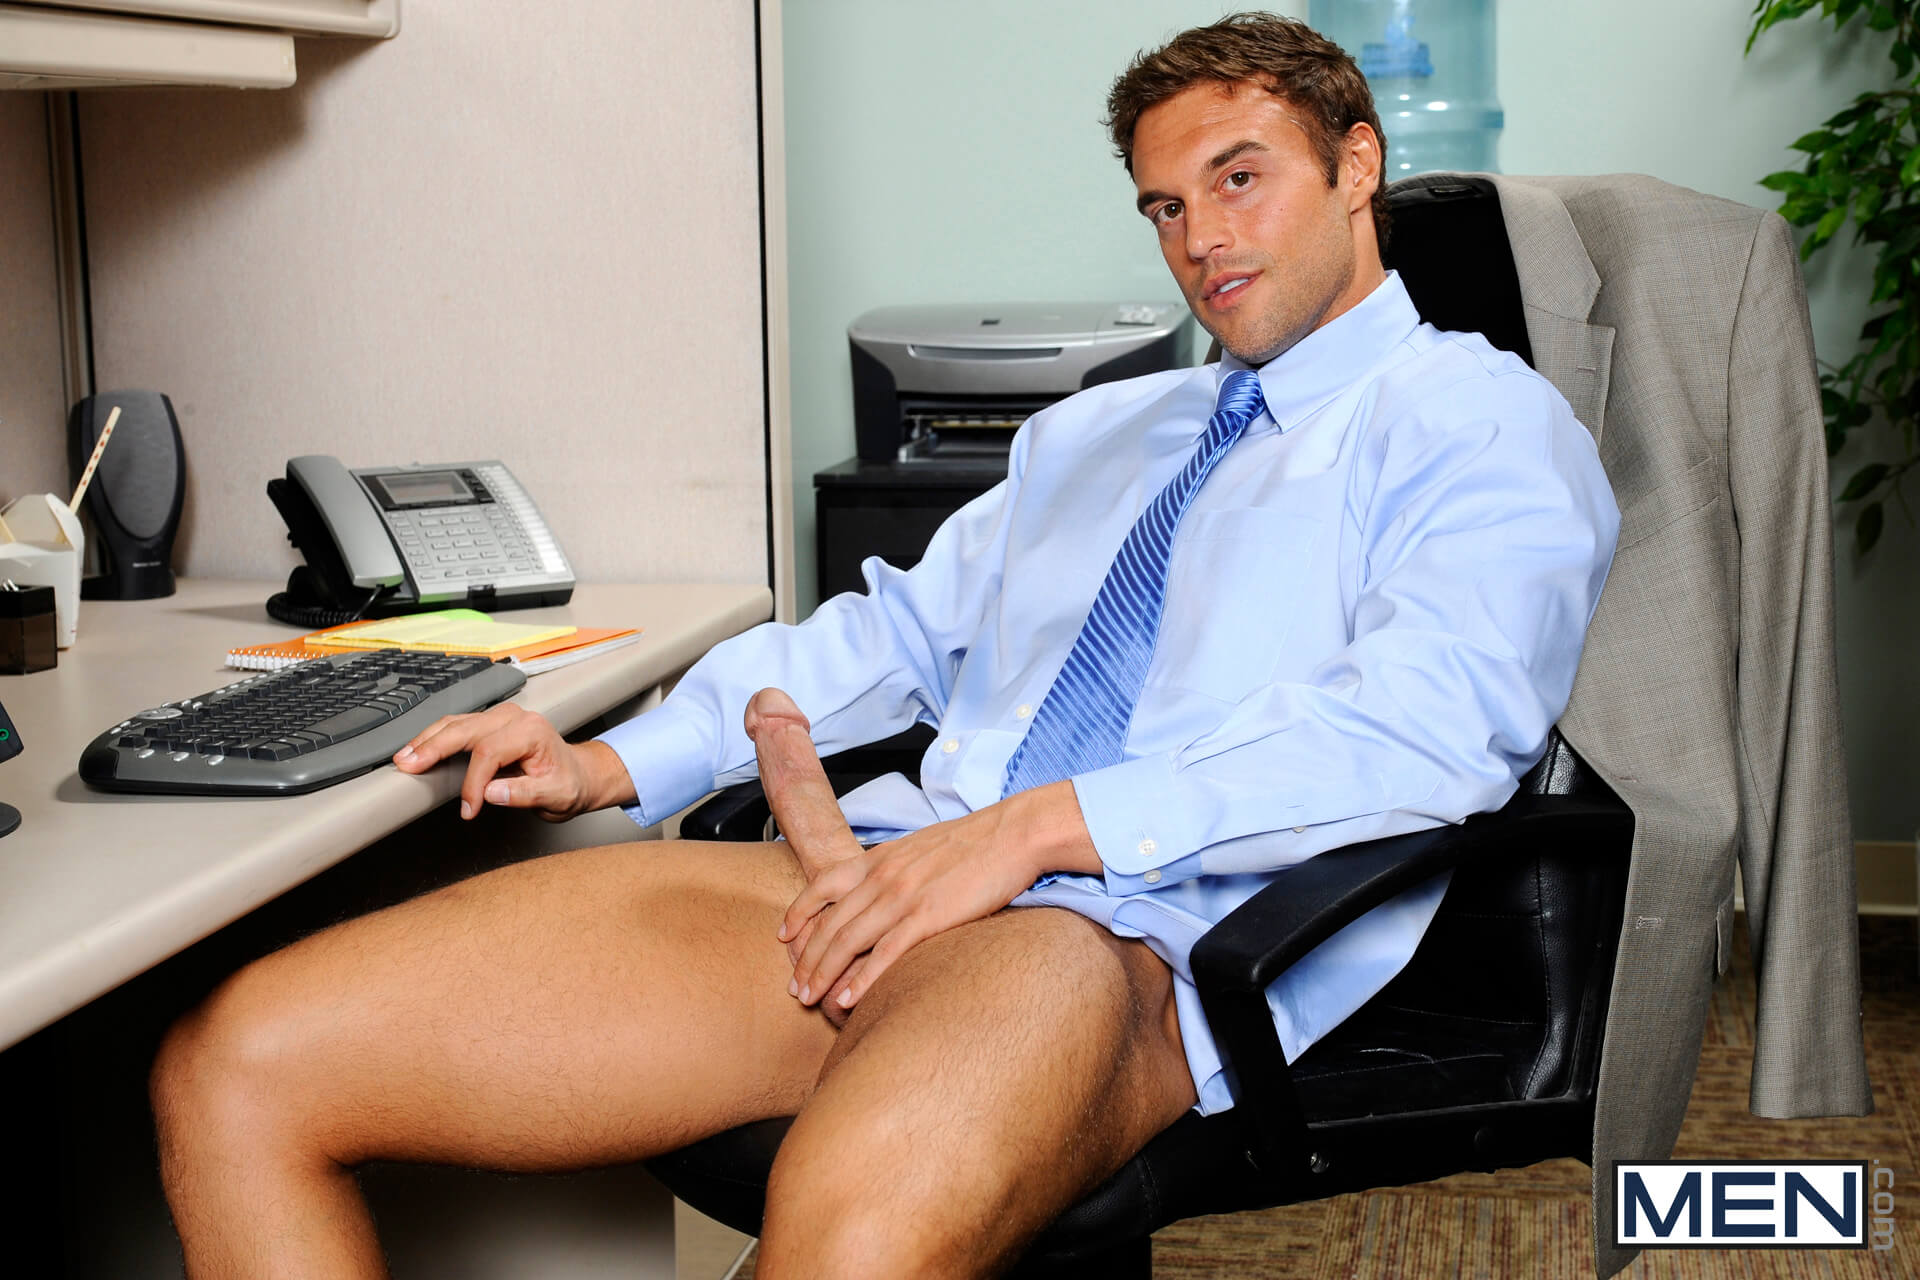 men the gay office last day on the job donny wright rocco reed gay porn blog image 2